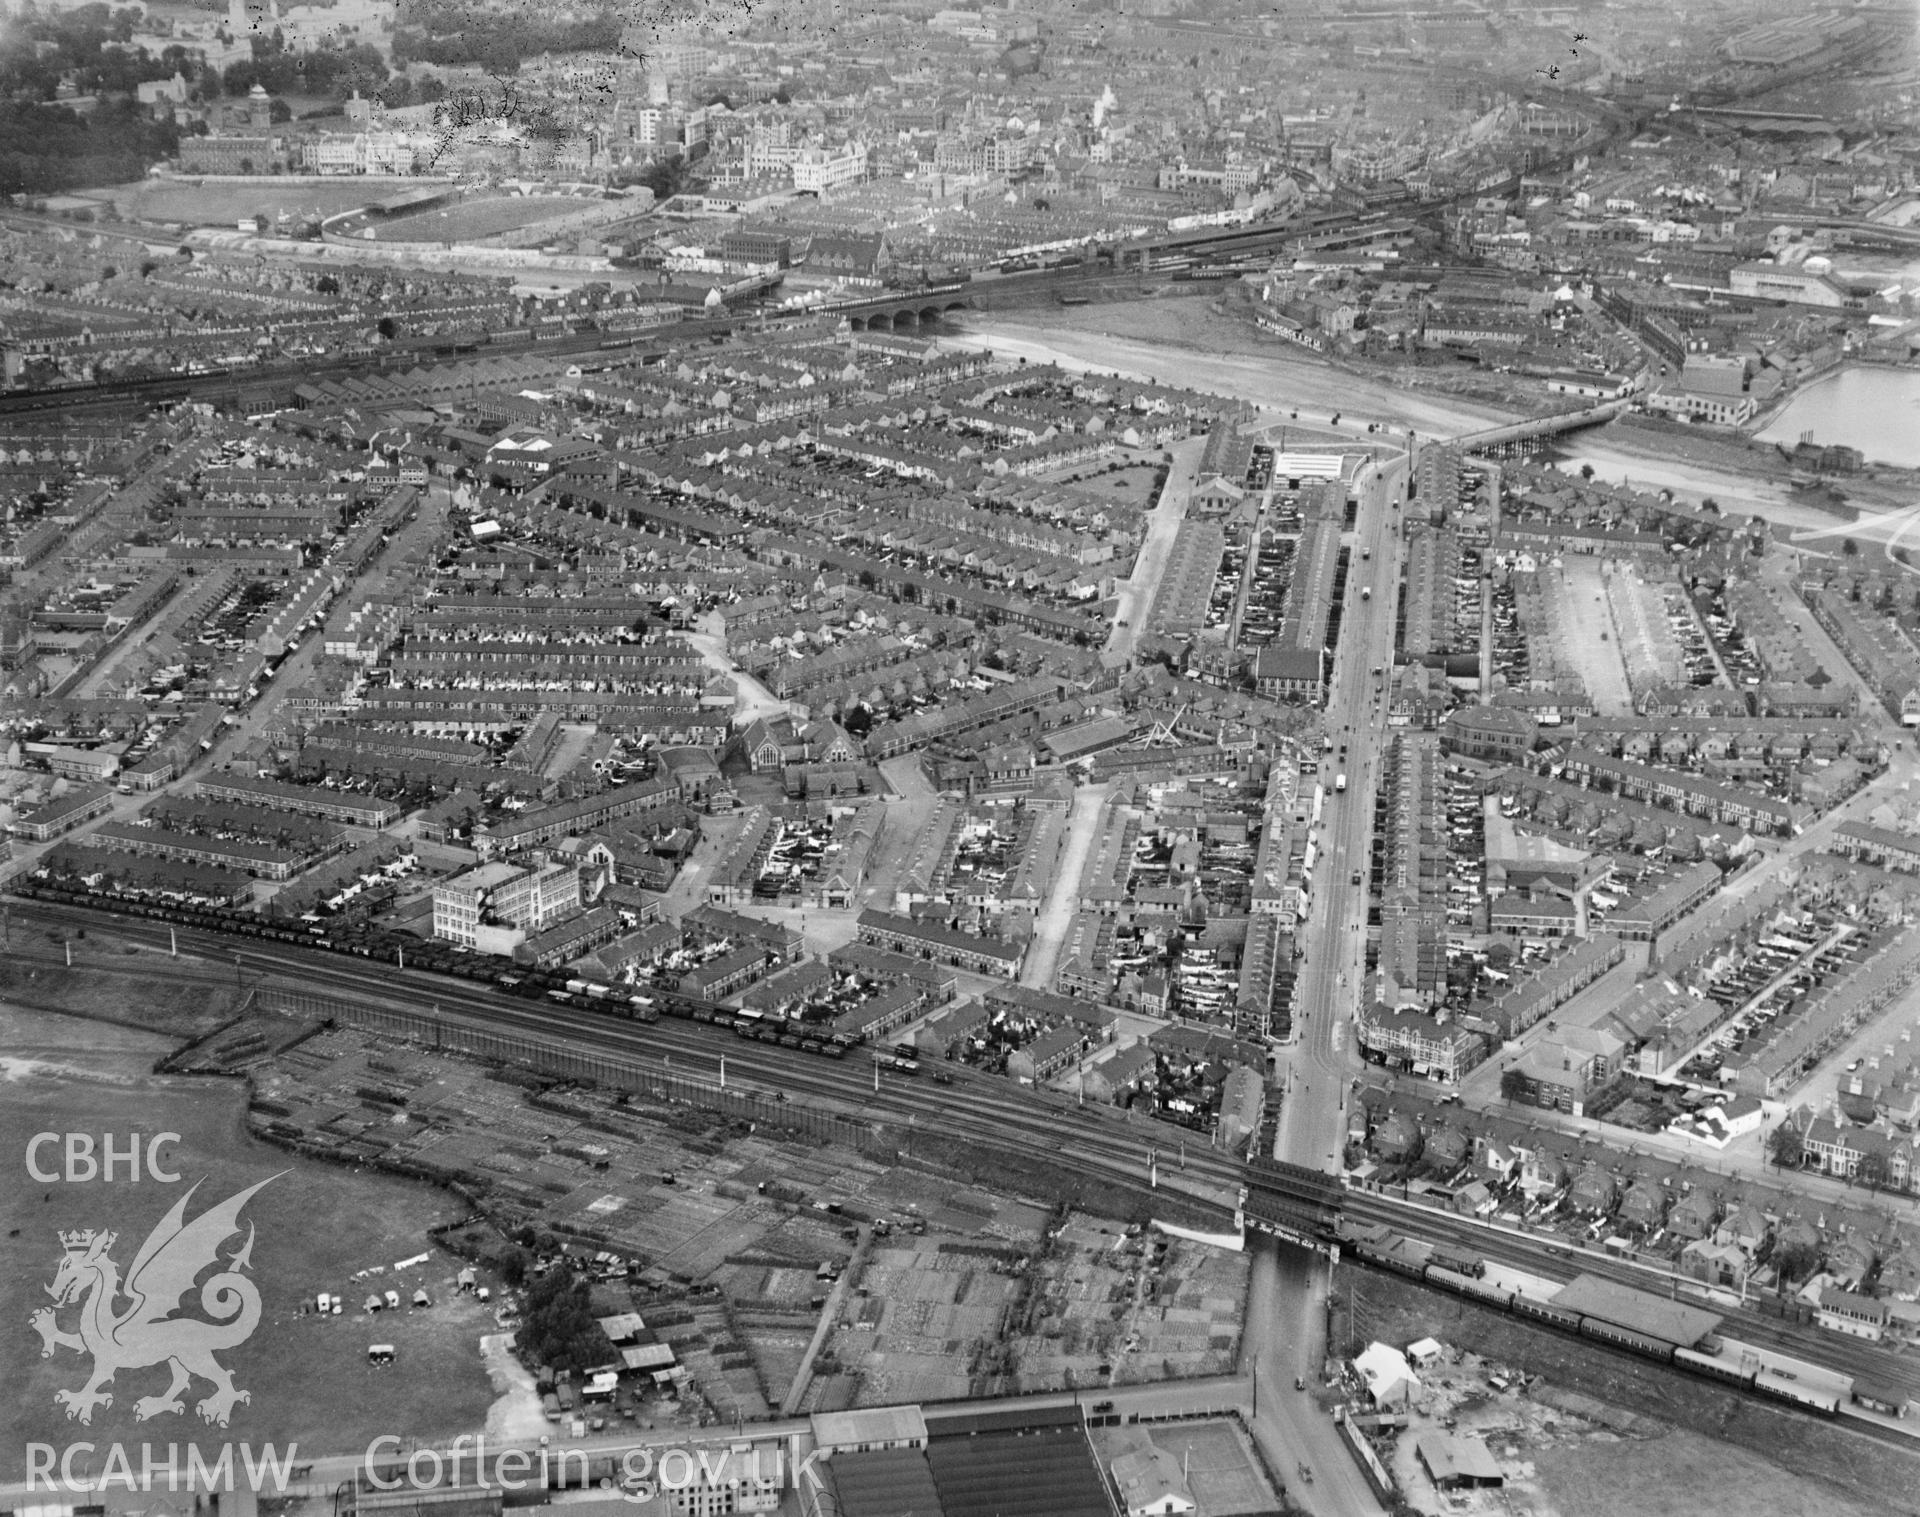 General view of Cardiff, residential areas, oblique aerial view. 5?x4? black and white glass plate negative.